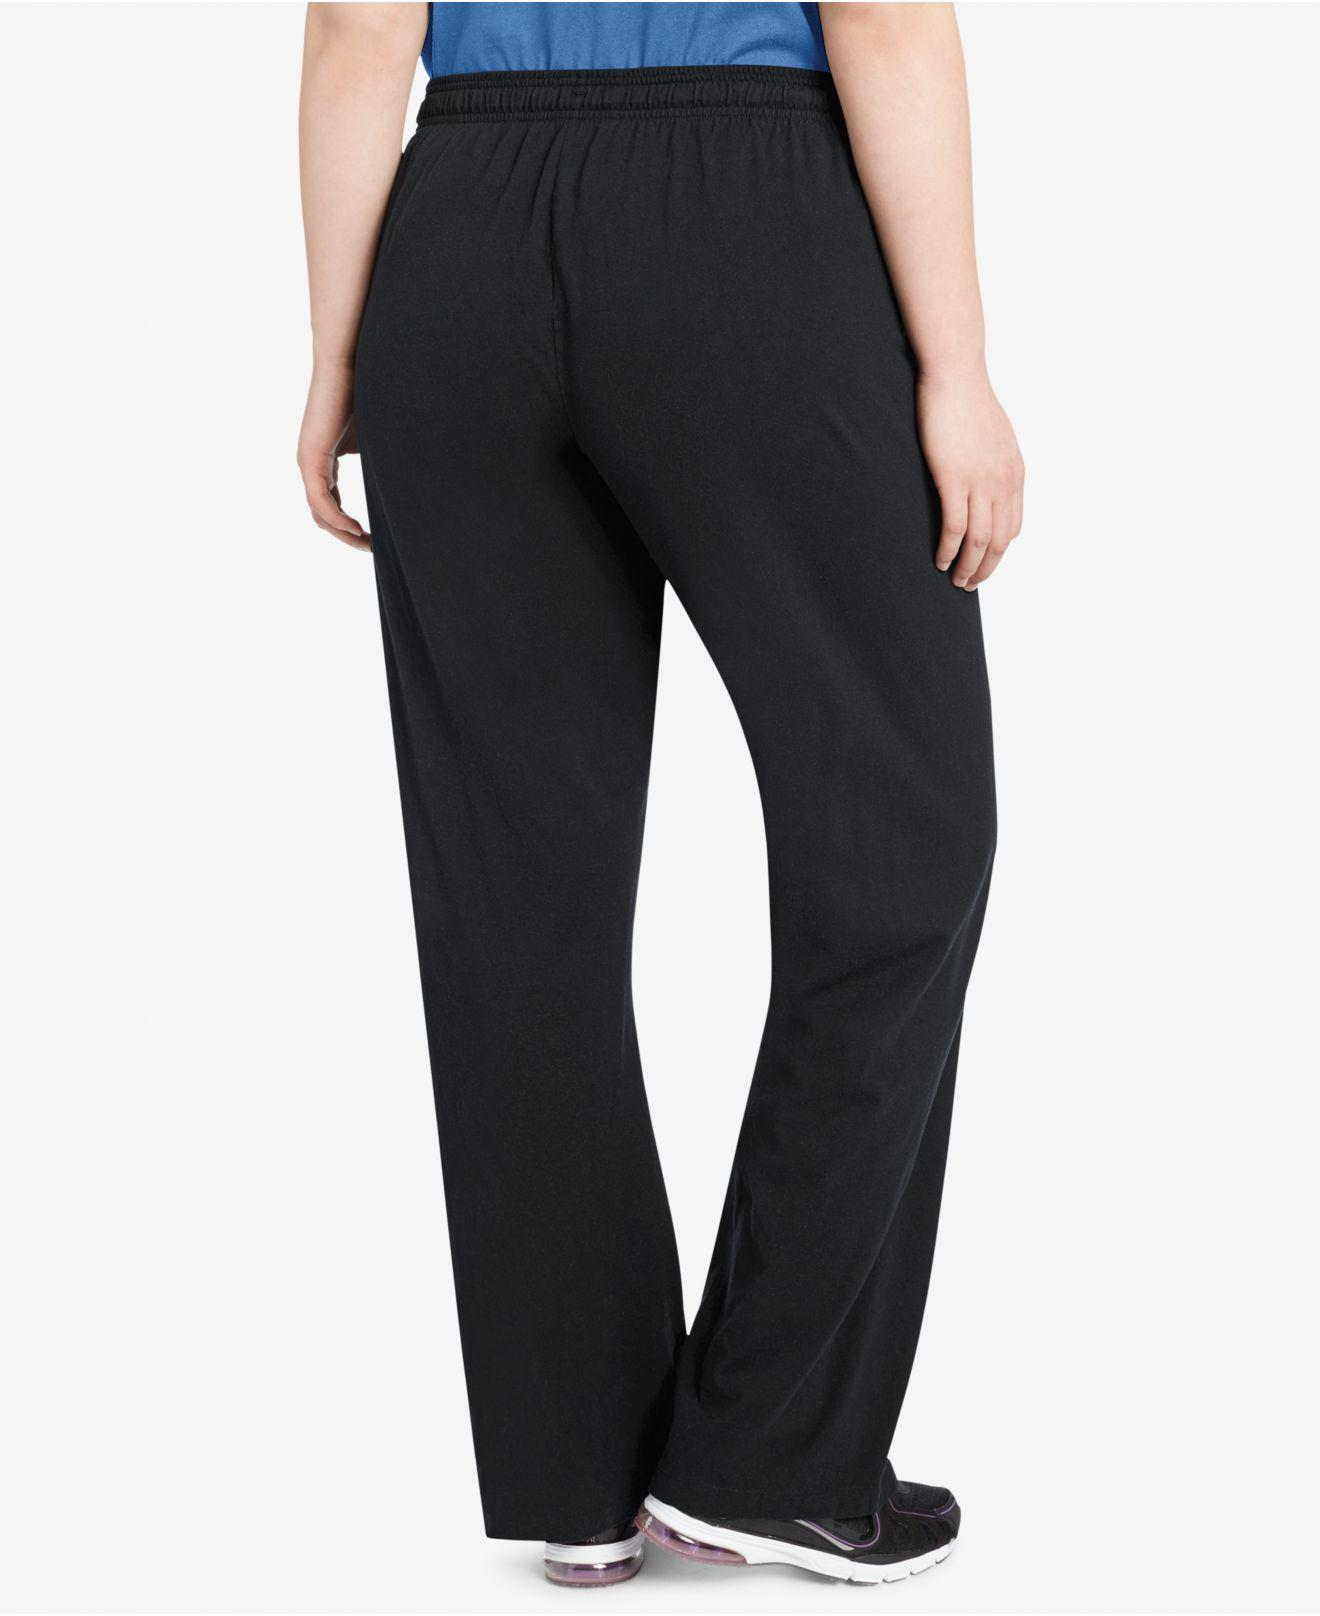 cc601d0e55c9 Lyst - Champion Plus Size Cotton Jersey Pants in Black